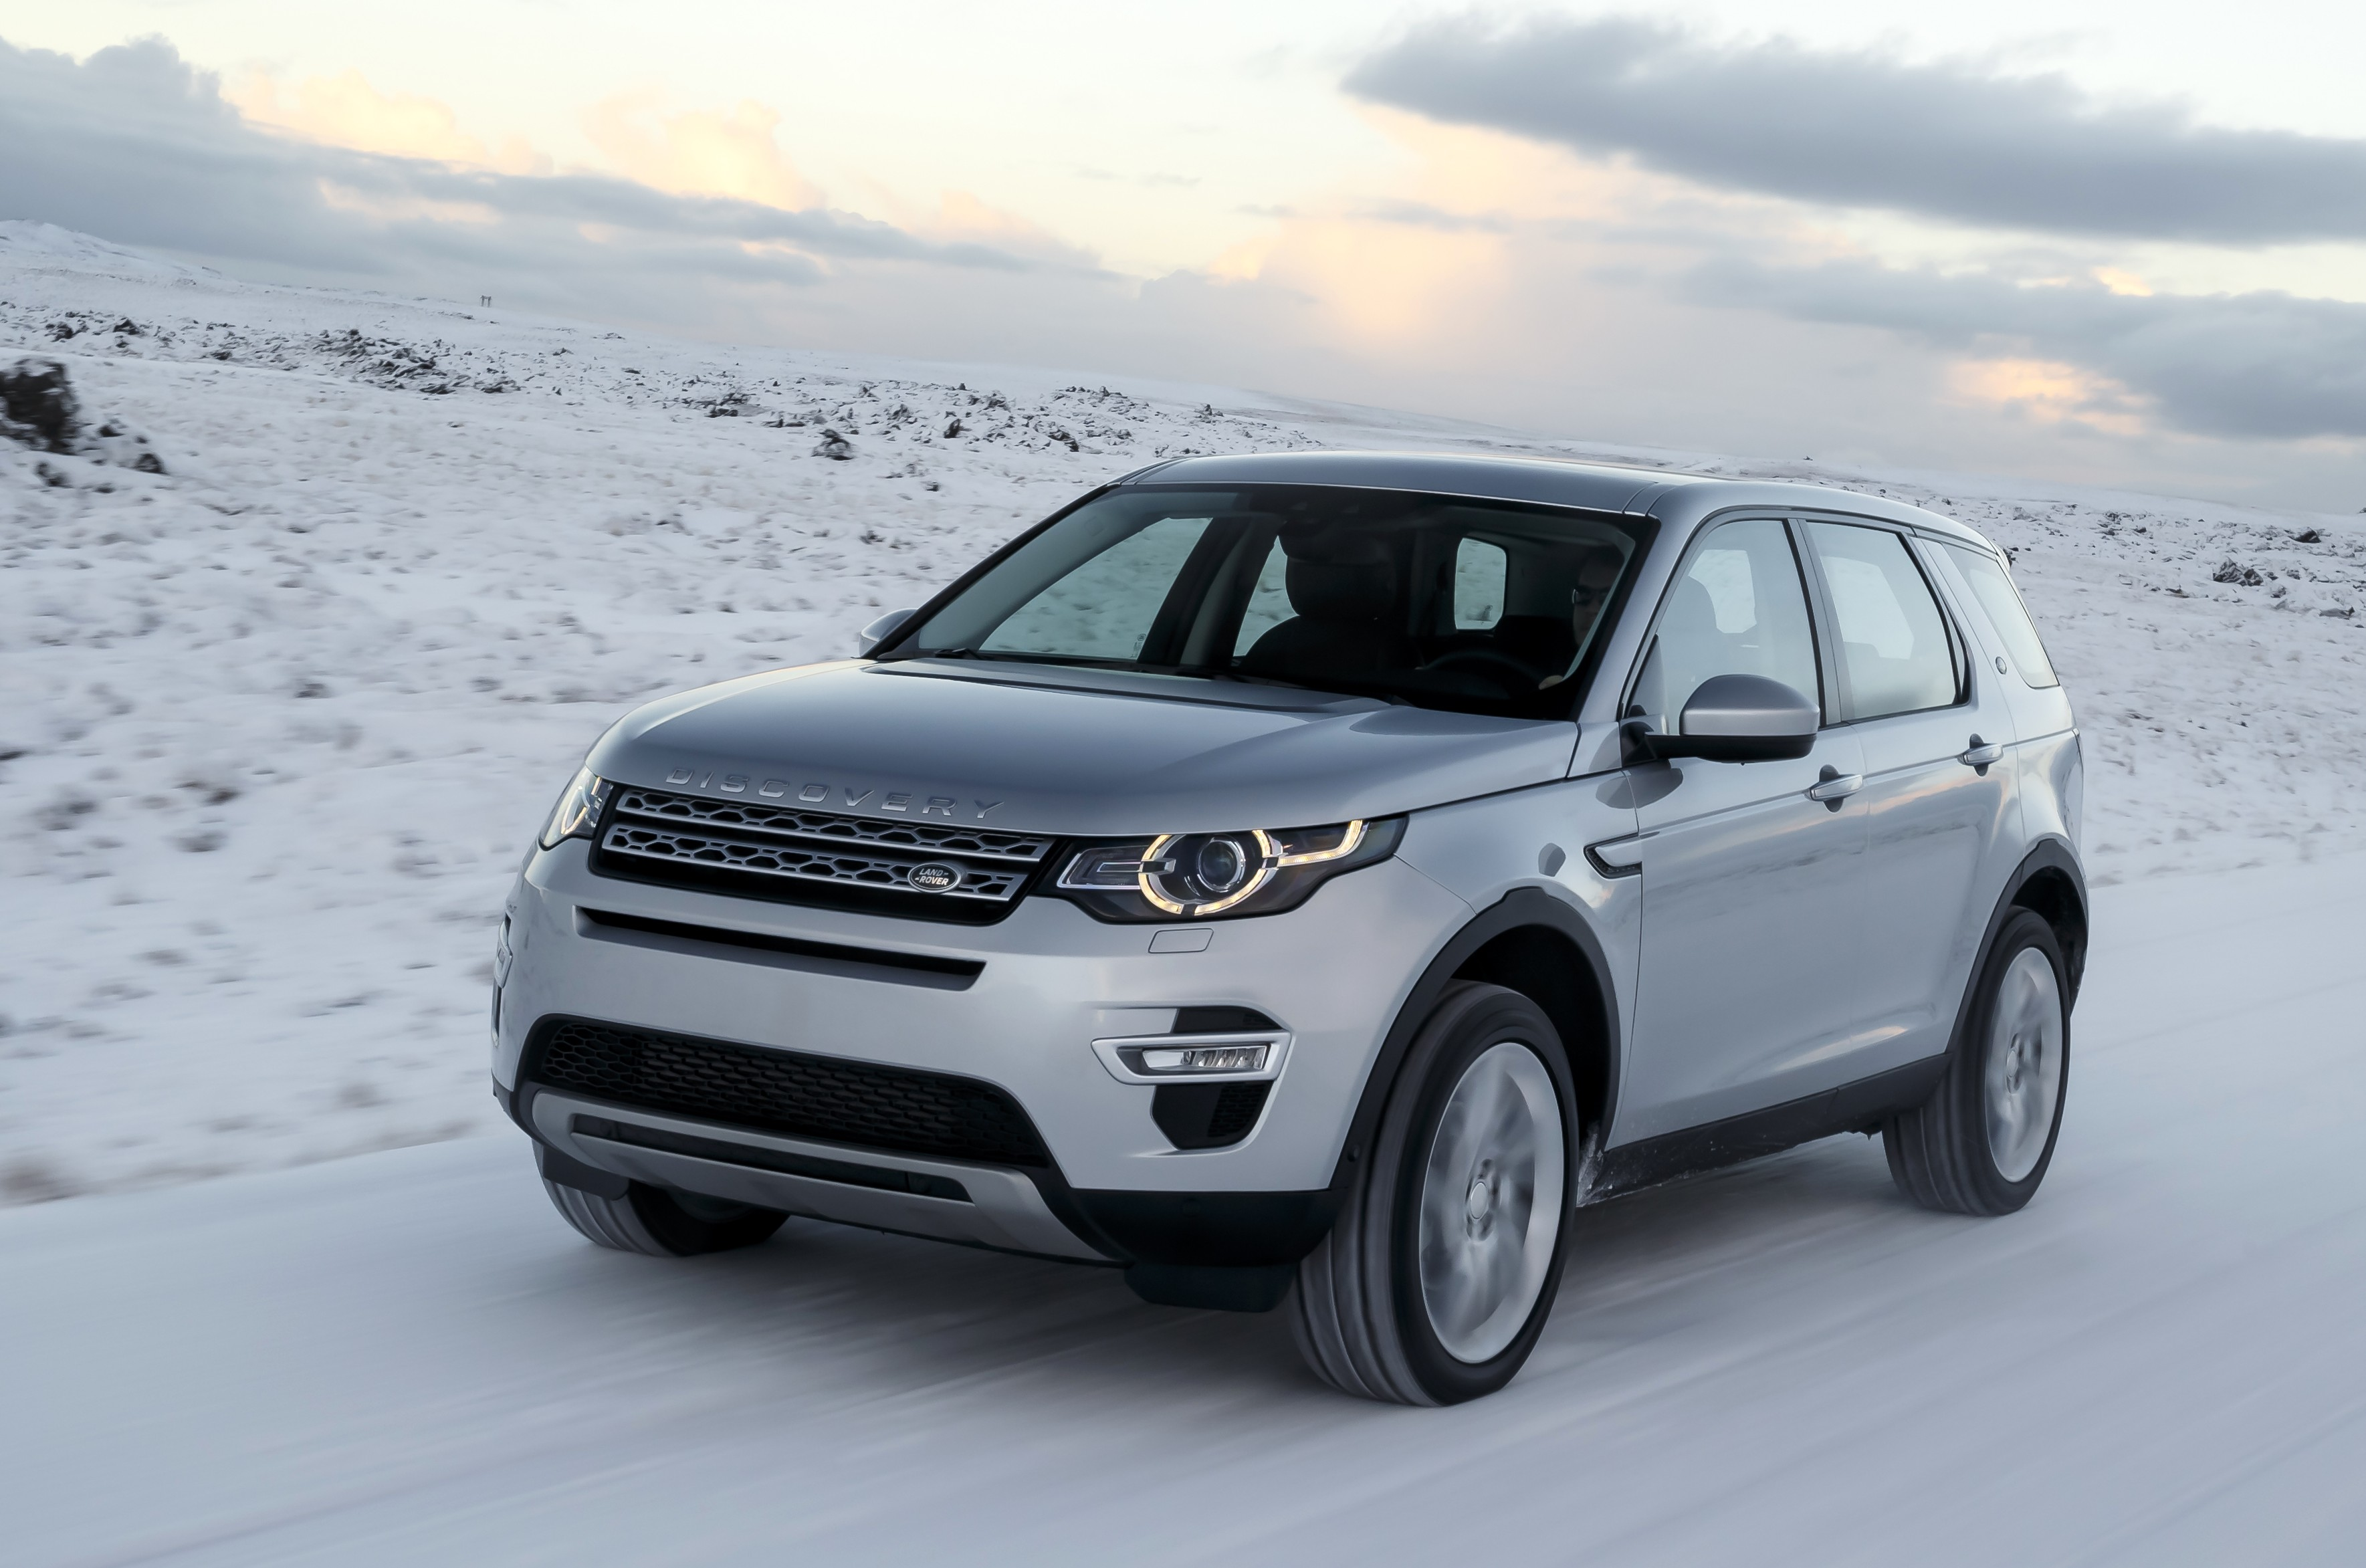 reviews ratings msrp sport rover price discovery news with land landrover